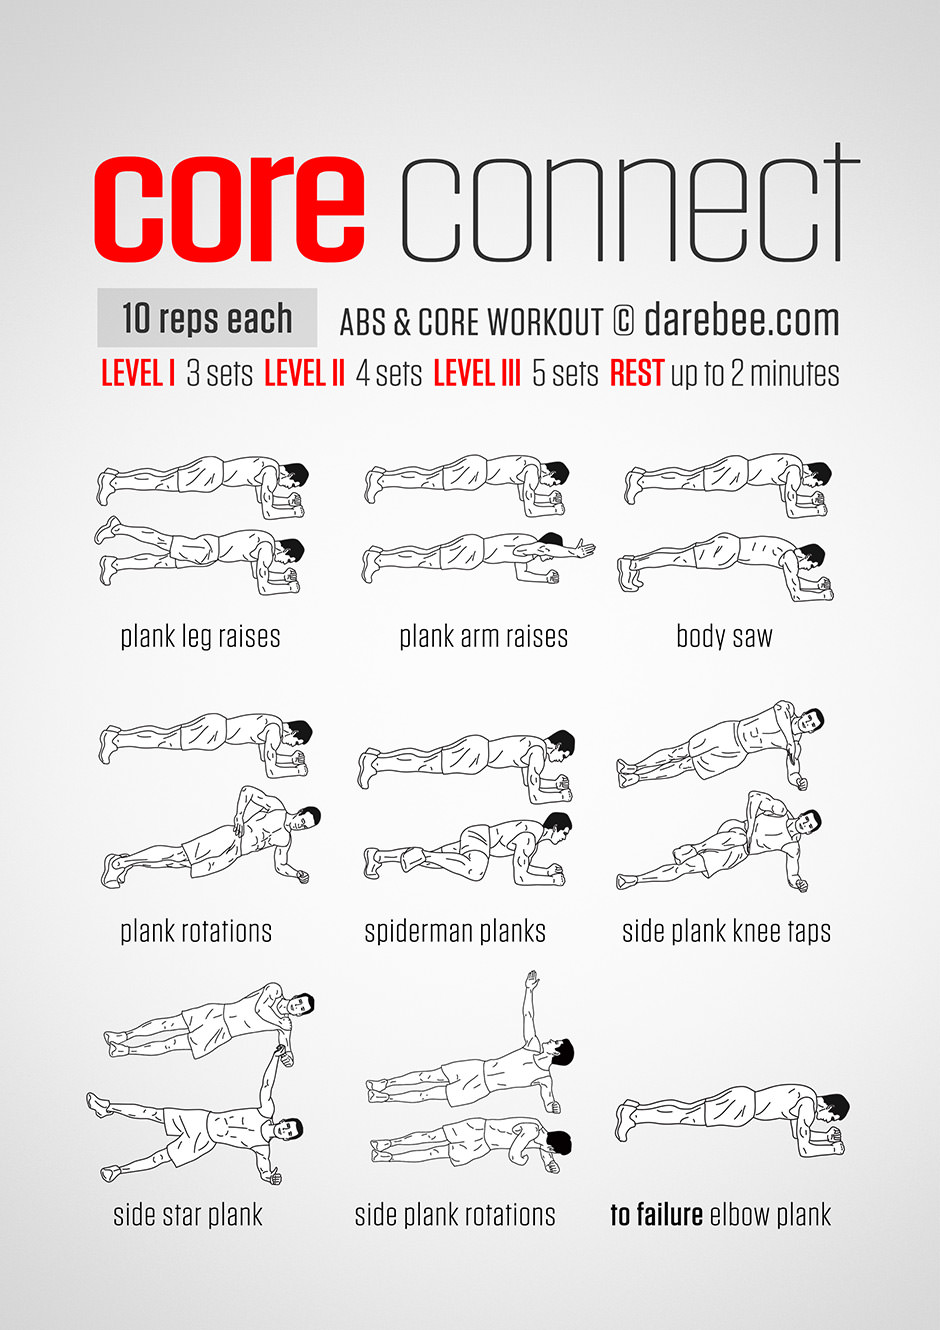 Why Strengthen Your Core? - Core Connect workout to build abs and help your back. Be stronger when you strengthen your core. #coreworkout #absworkout #weightlossinspiration #athomeworkouts